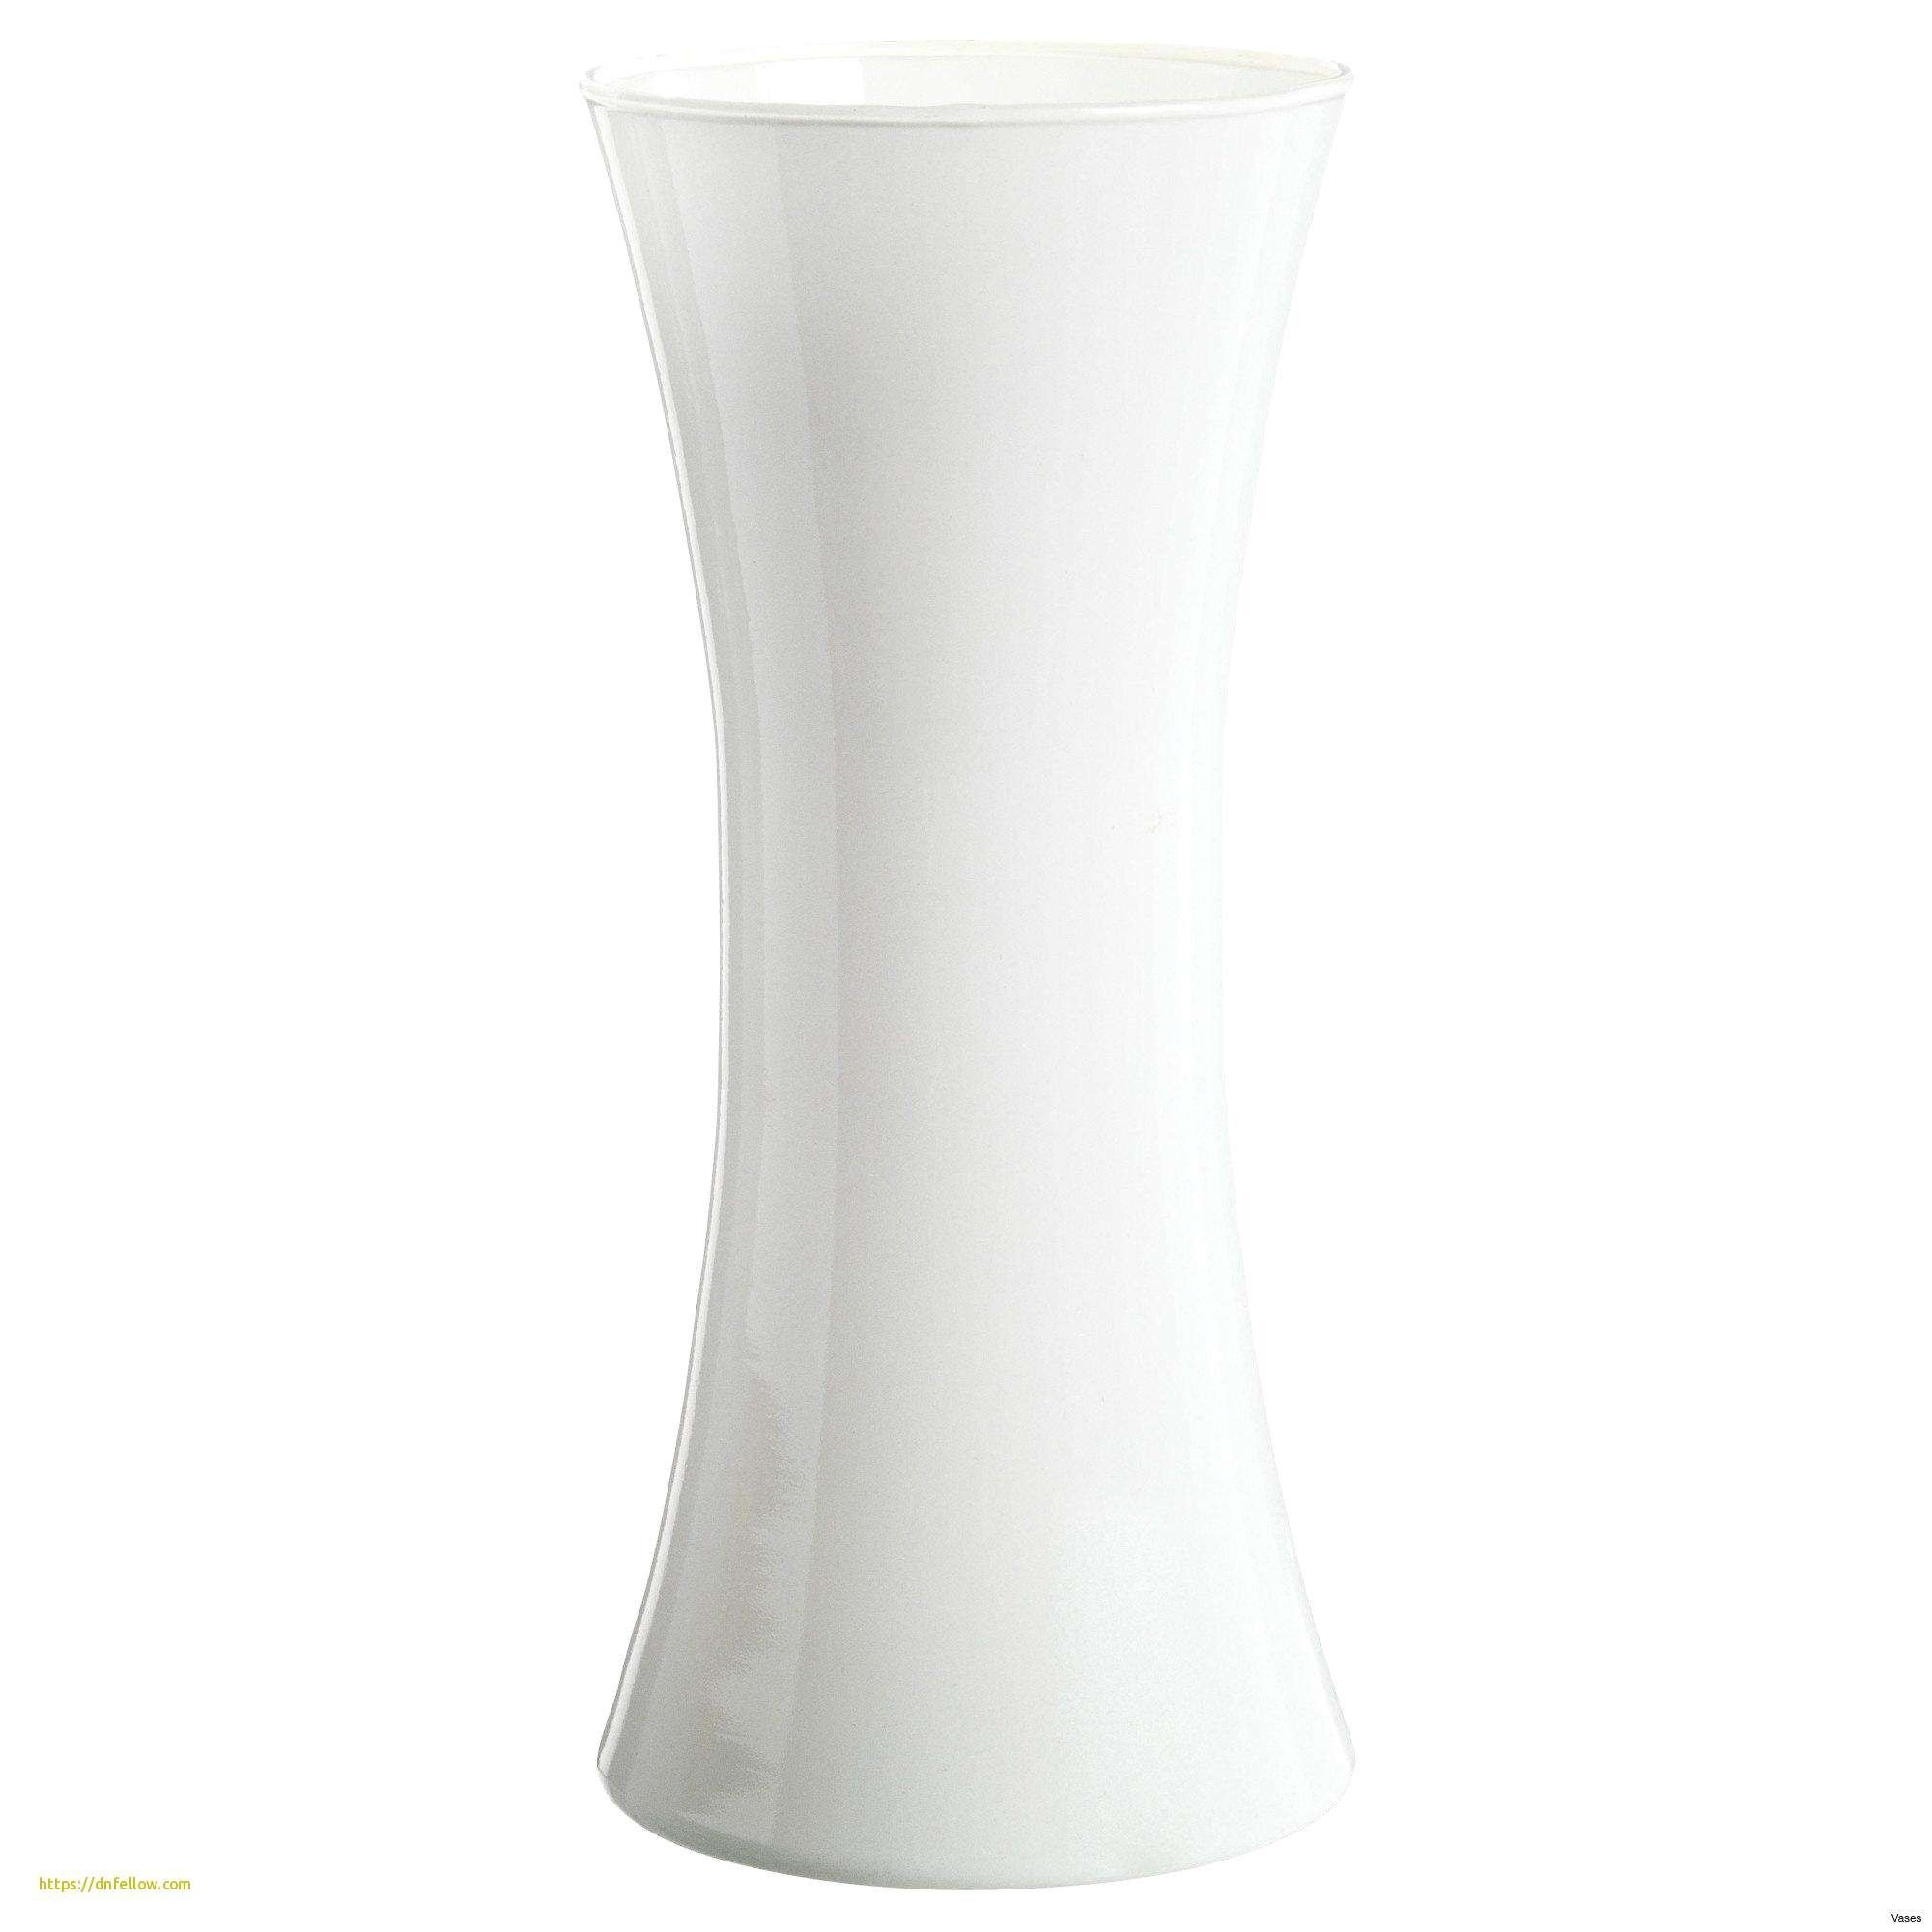 White Ceramic Jug Vase Of White Vase Set New White Floor Vase Ceramic Modern 40 Inchl Home Inside White Vase Set New White Floor Vase Ceramic Modern 40 Inchl Home Design Ikea Inch